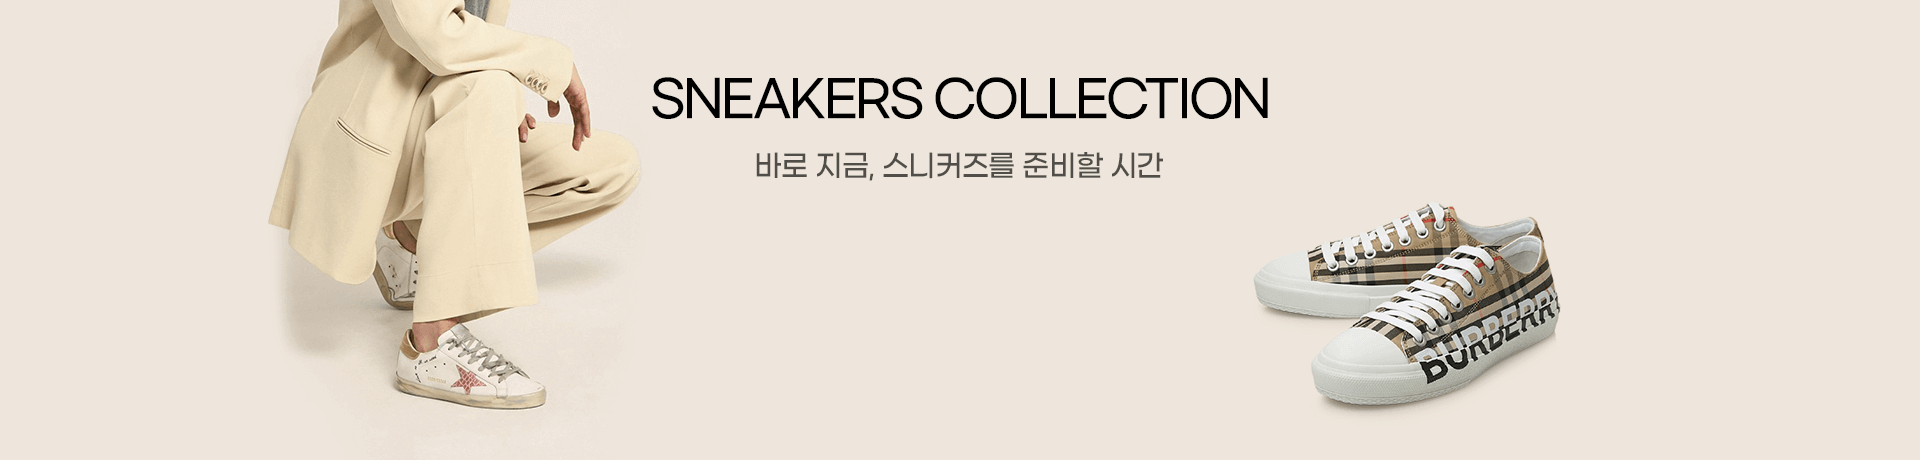 210920_sk_sneakers-collection_pc_eee5dc